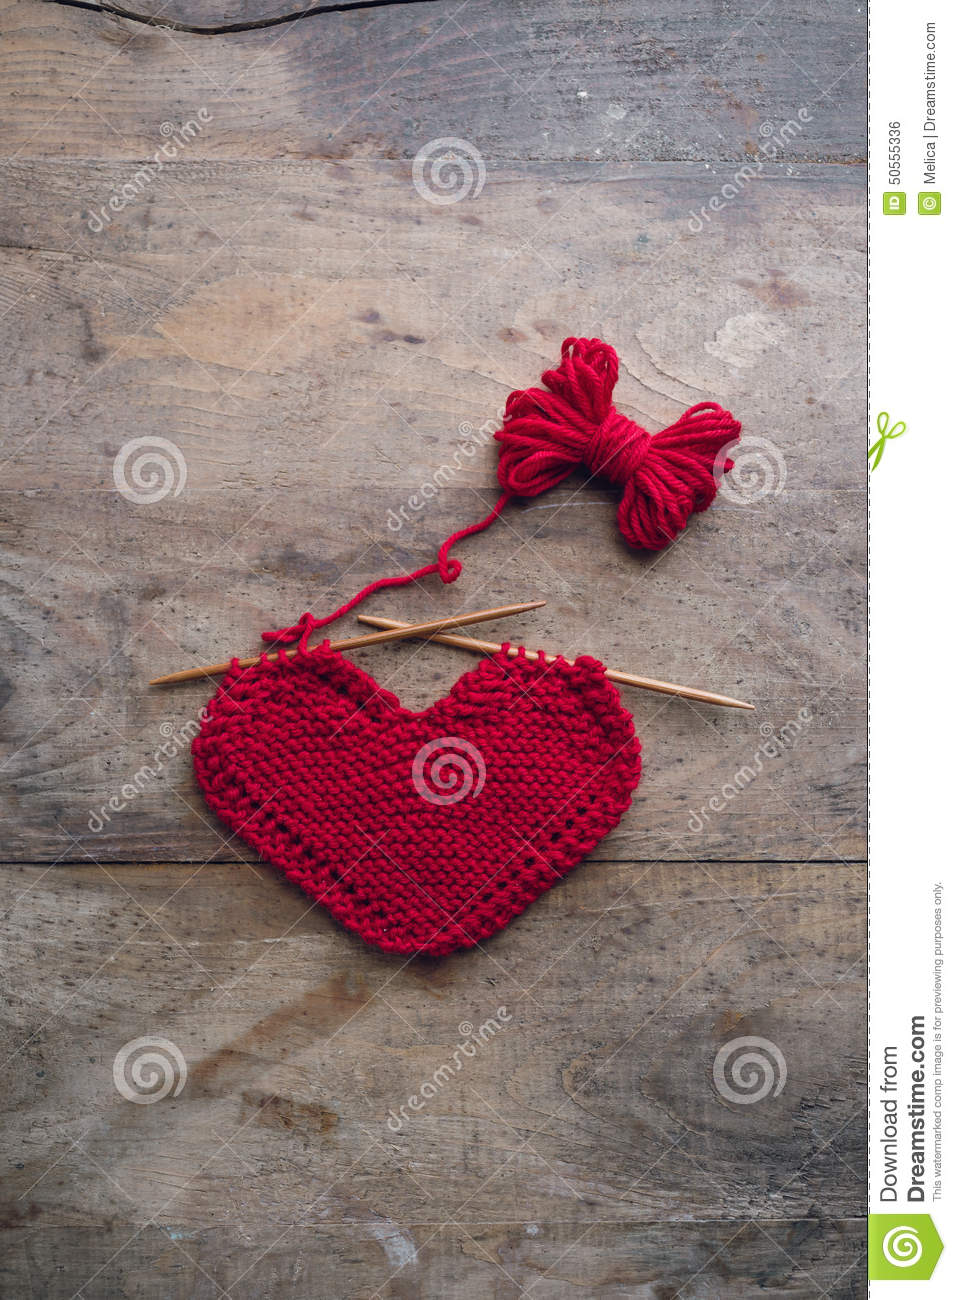 Love Knitting stock photo. Image of cute, decor, crafts - 50555336